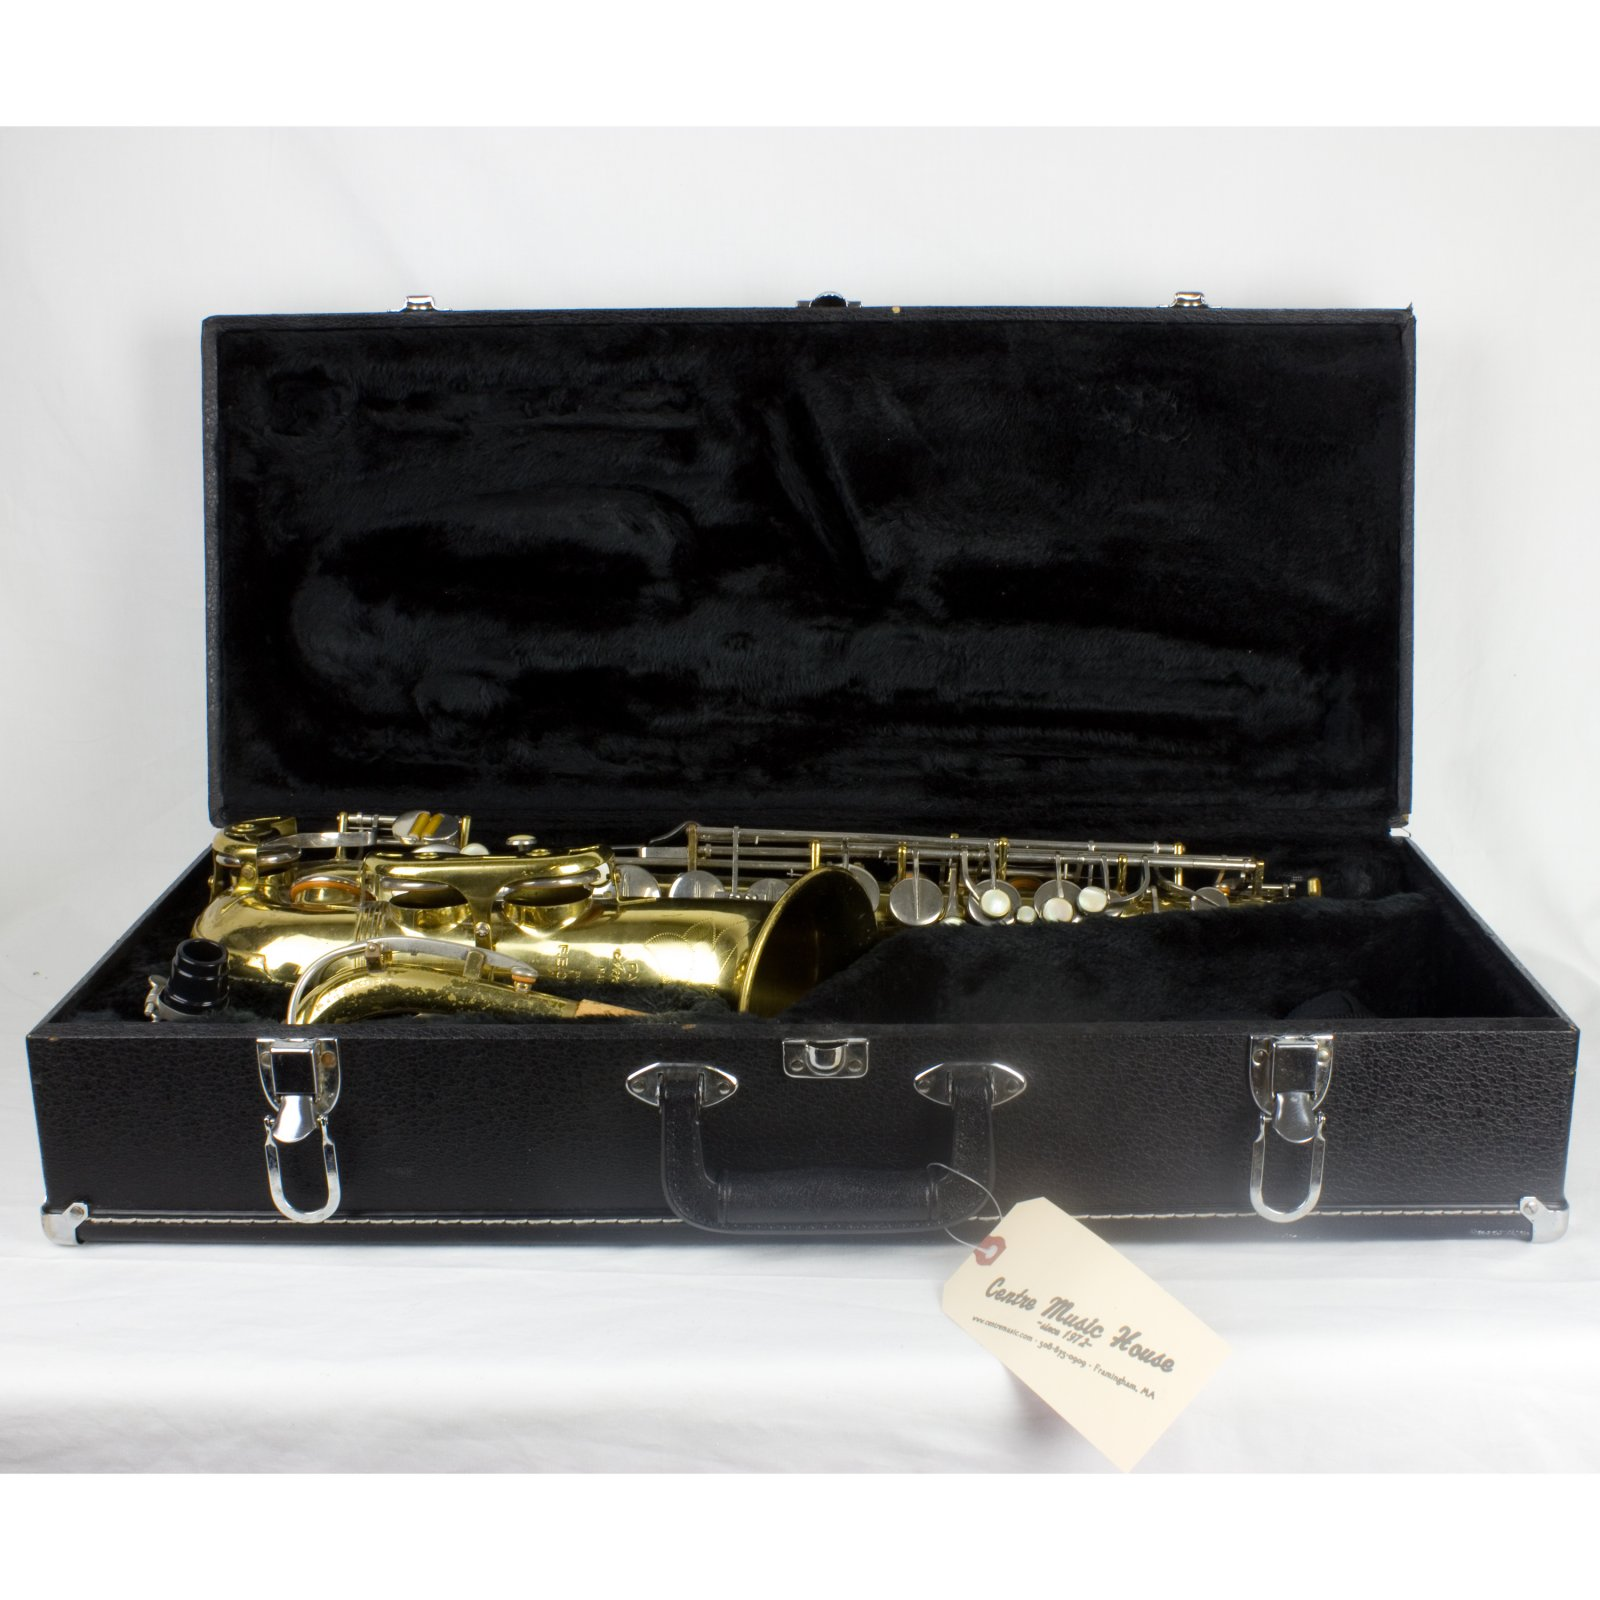 F.E. Olds & Son The Parisian Ambassador Alto Saxophone (USED)